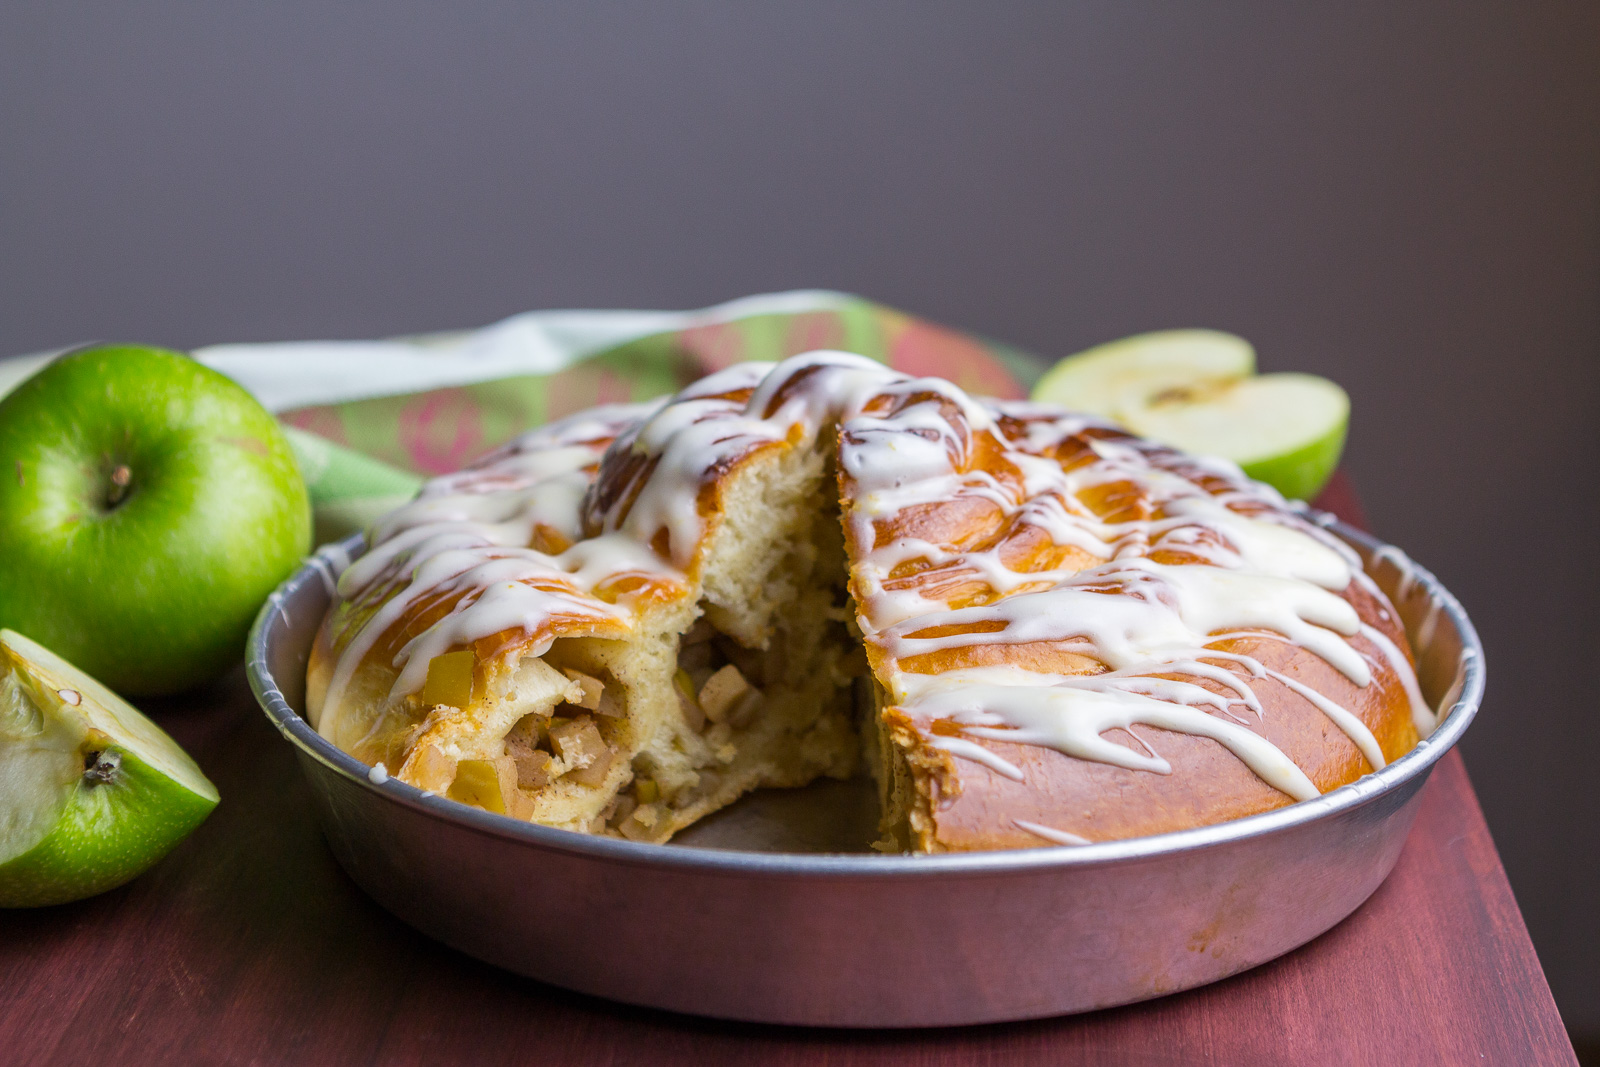 giant-apple-cinnamon-roll-14.jpg